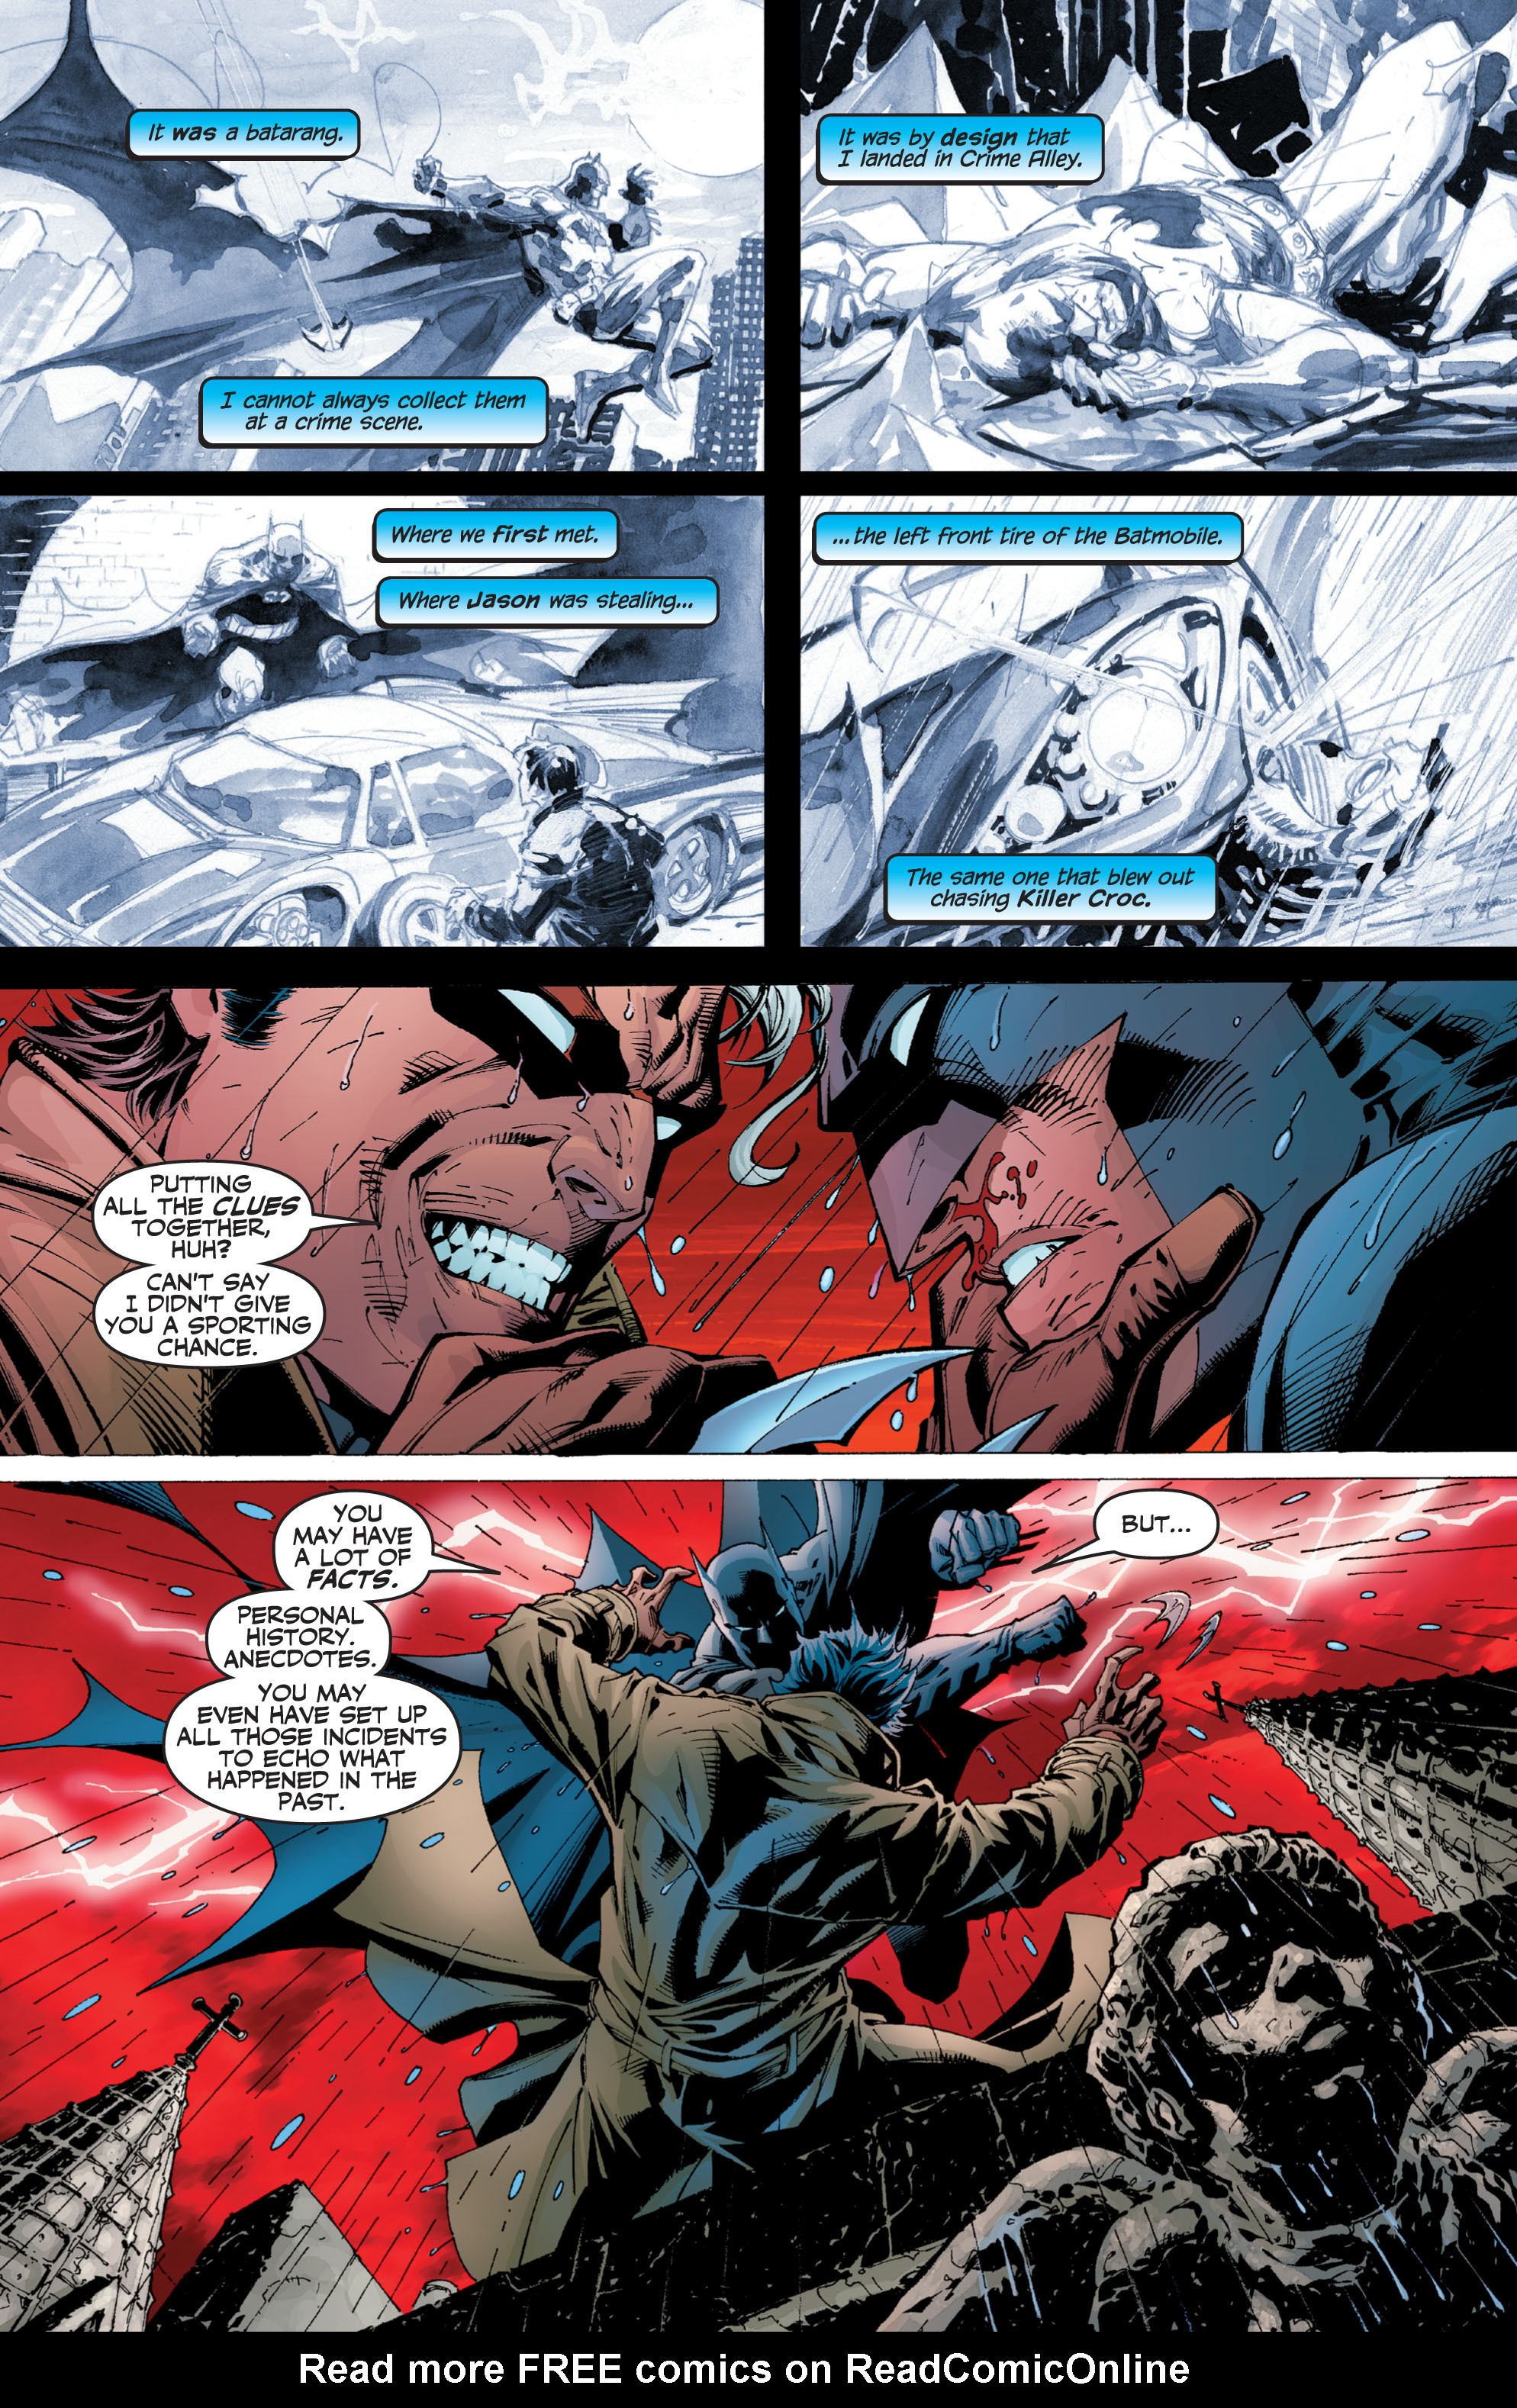 Read online Batman: Under The Red Hood comic -  Issue # Full - 372